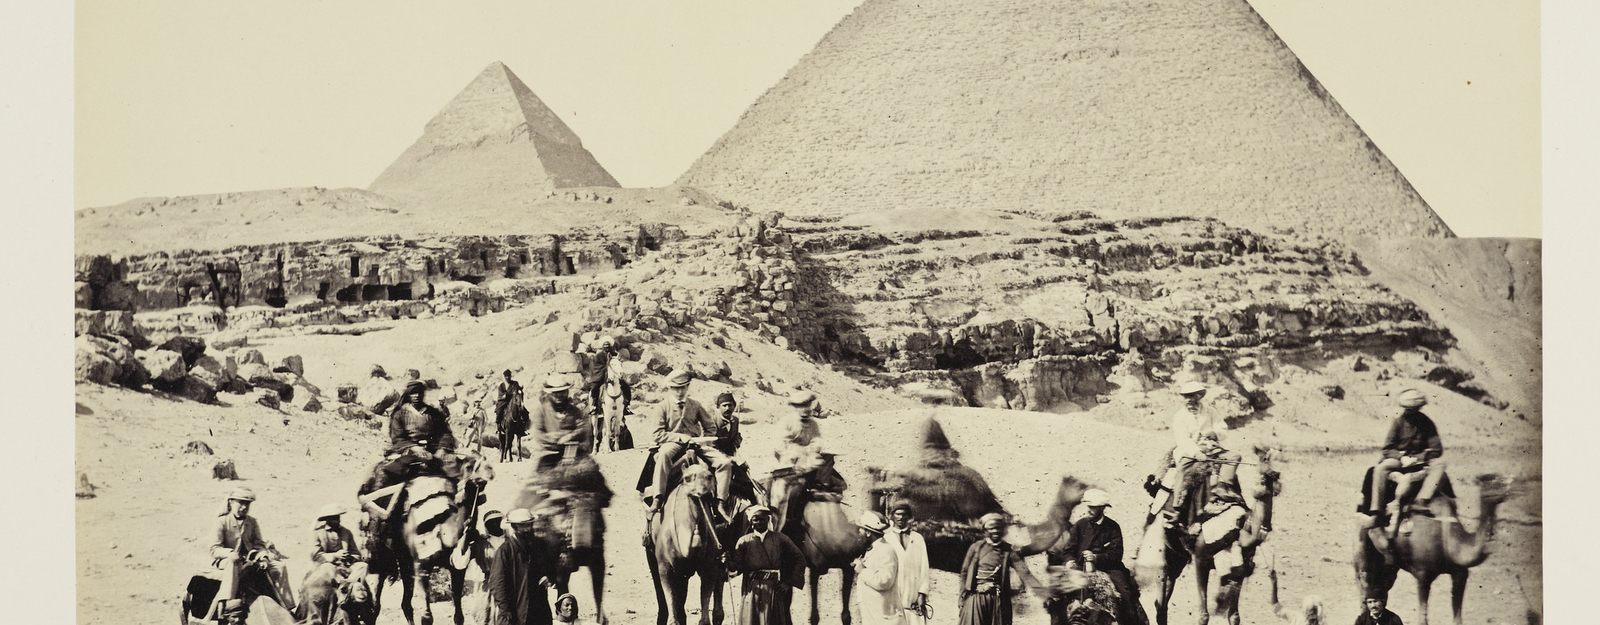 The Prince of Wales and his entourage on camels posing for camera in front of Pyramid of Cheops and Pyramid of Cephrenes, Giza, Cairo. The Prince is seated on the camel fifth from the left. The man in the white suit with a cigar, gazing up at the Prince,